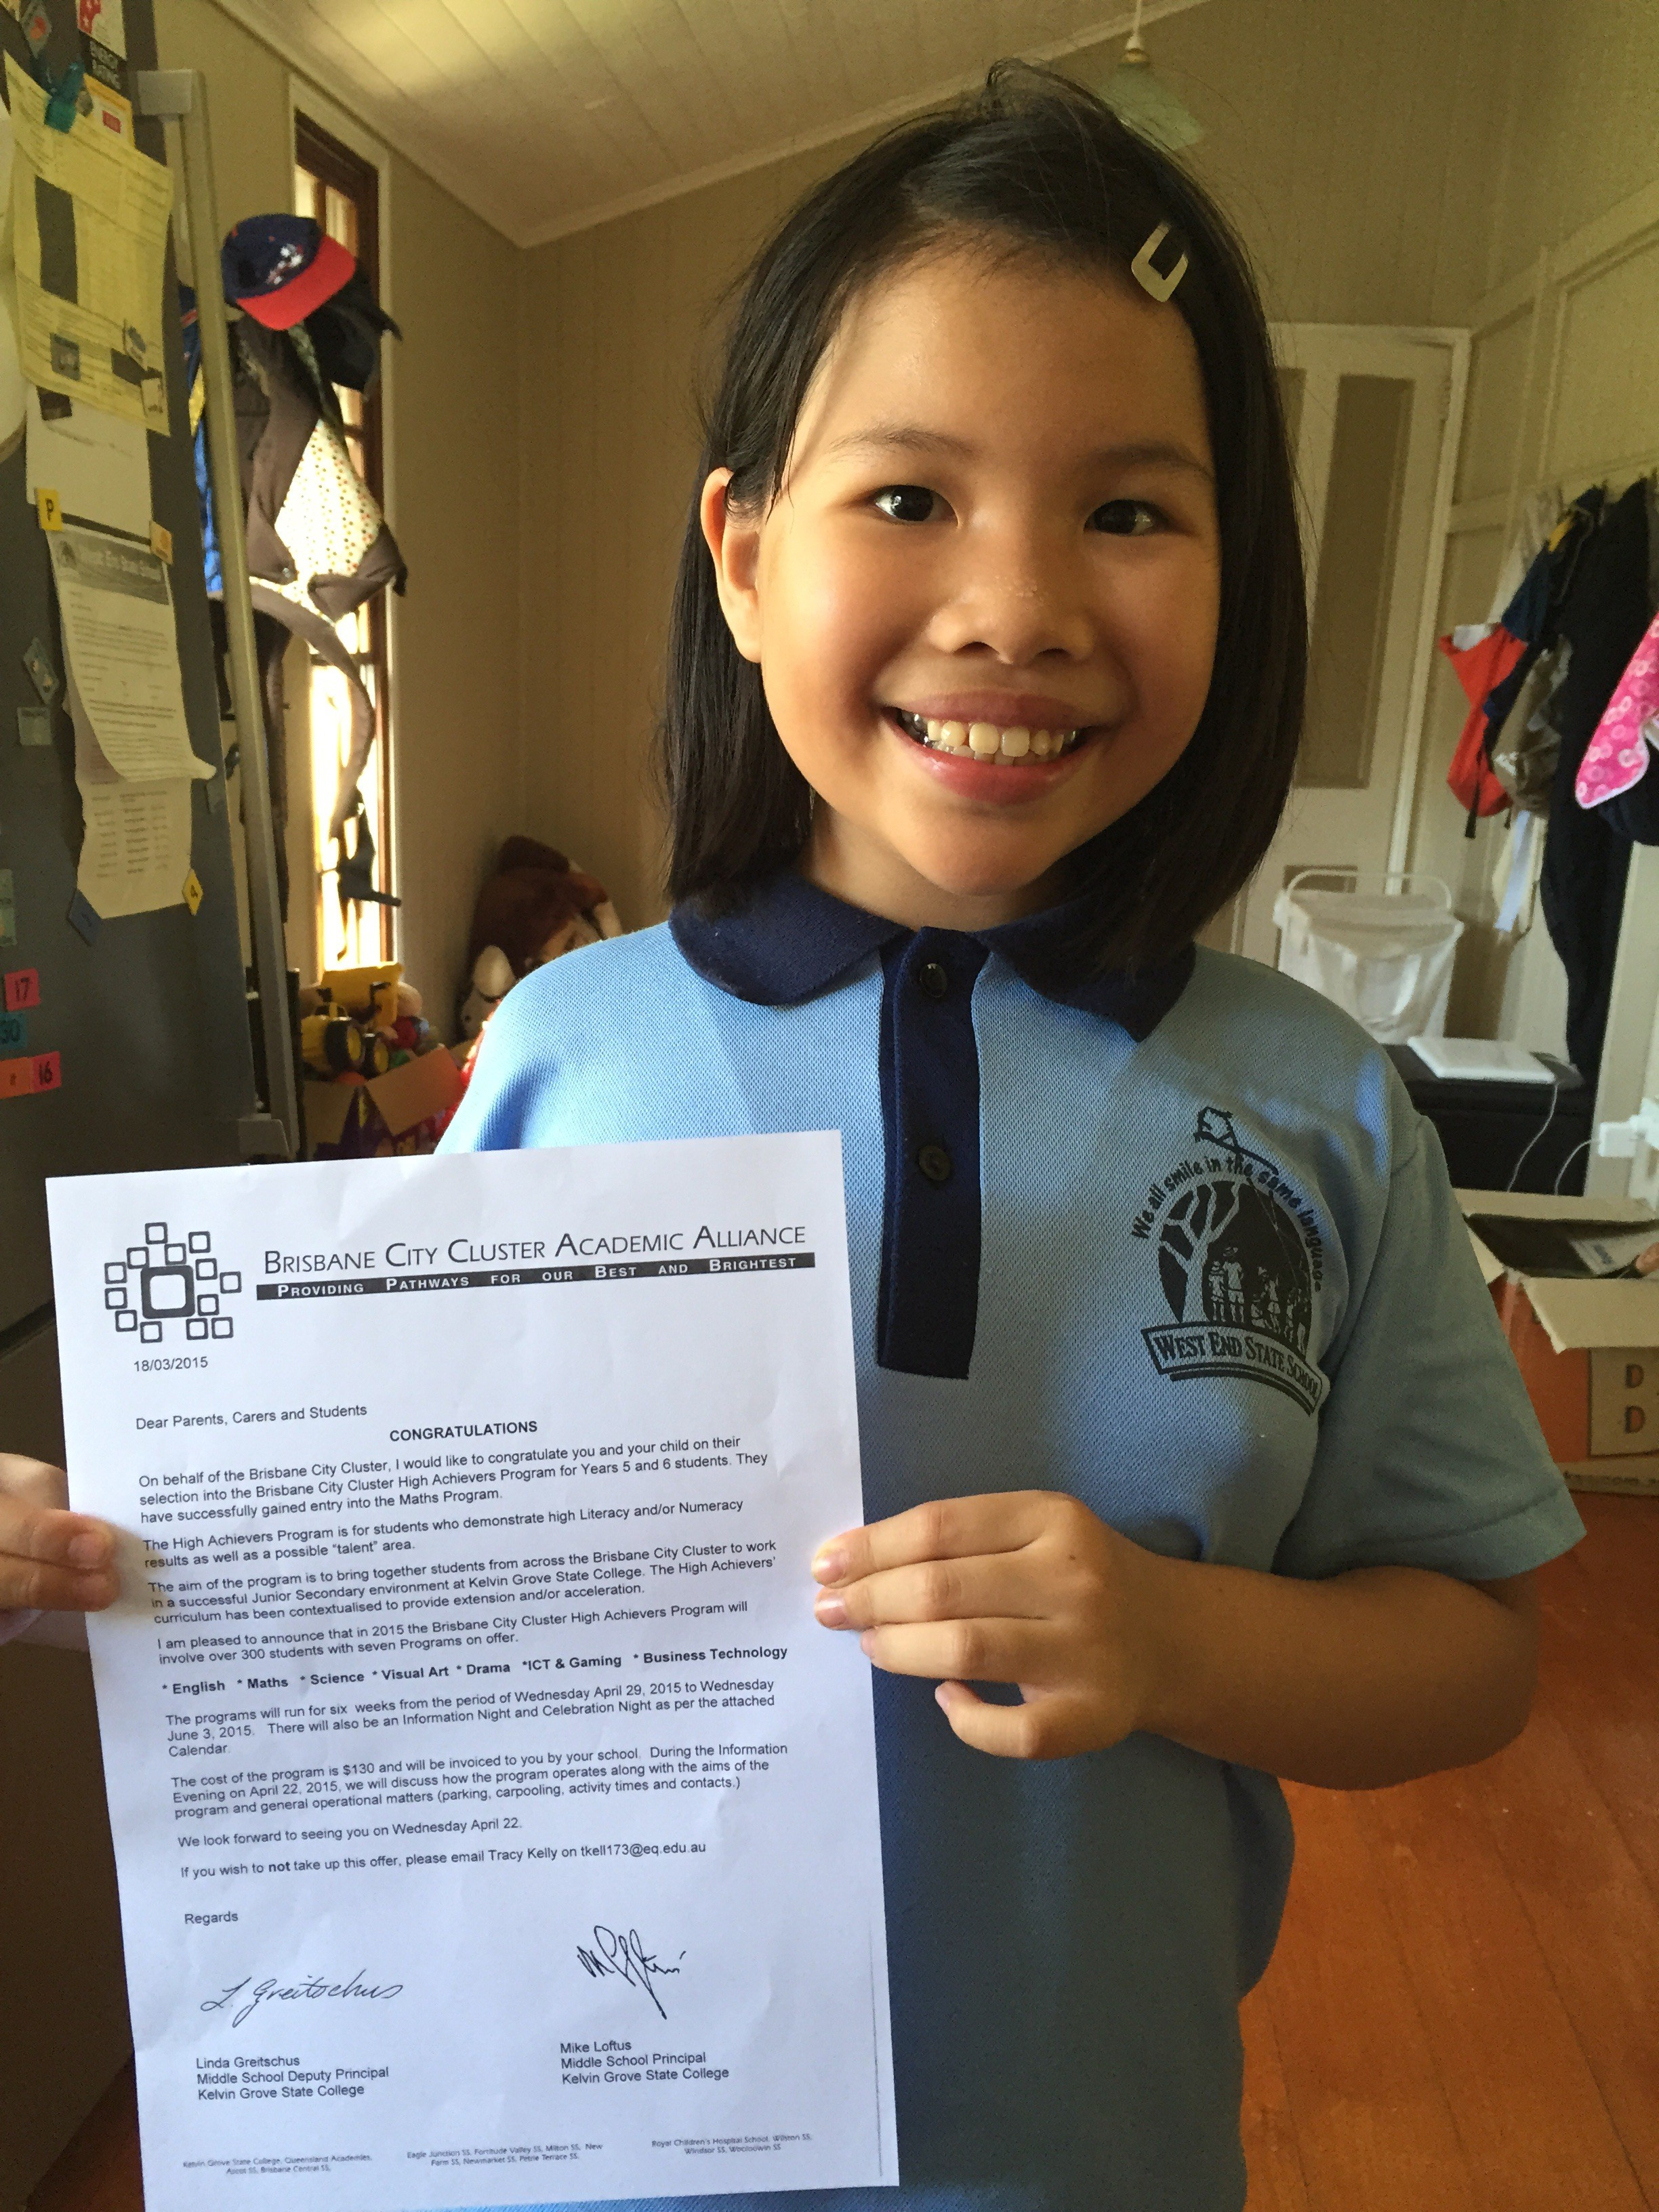 A picture of Amanda with her offer letter.